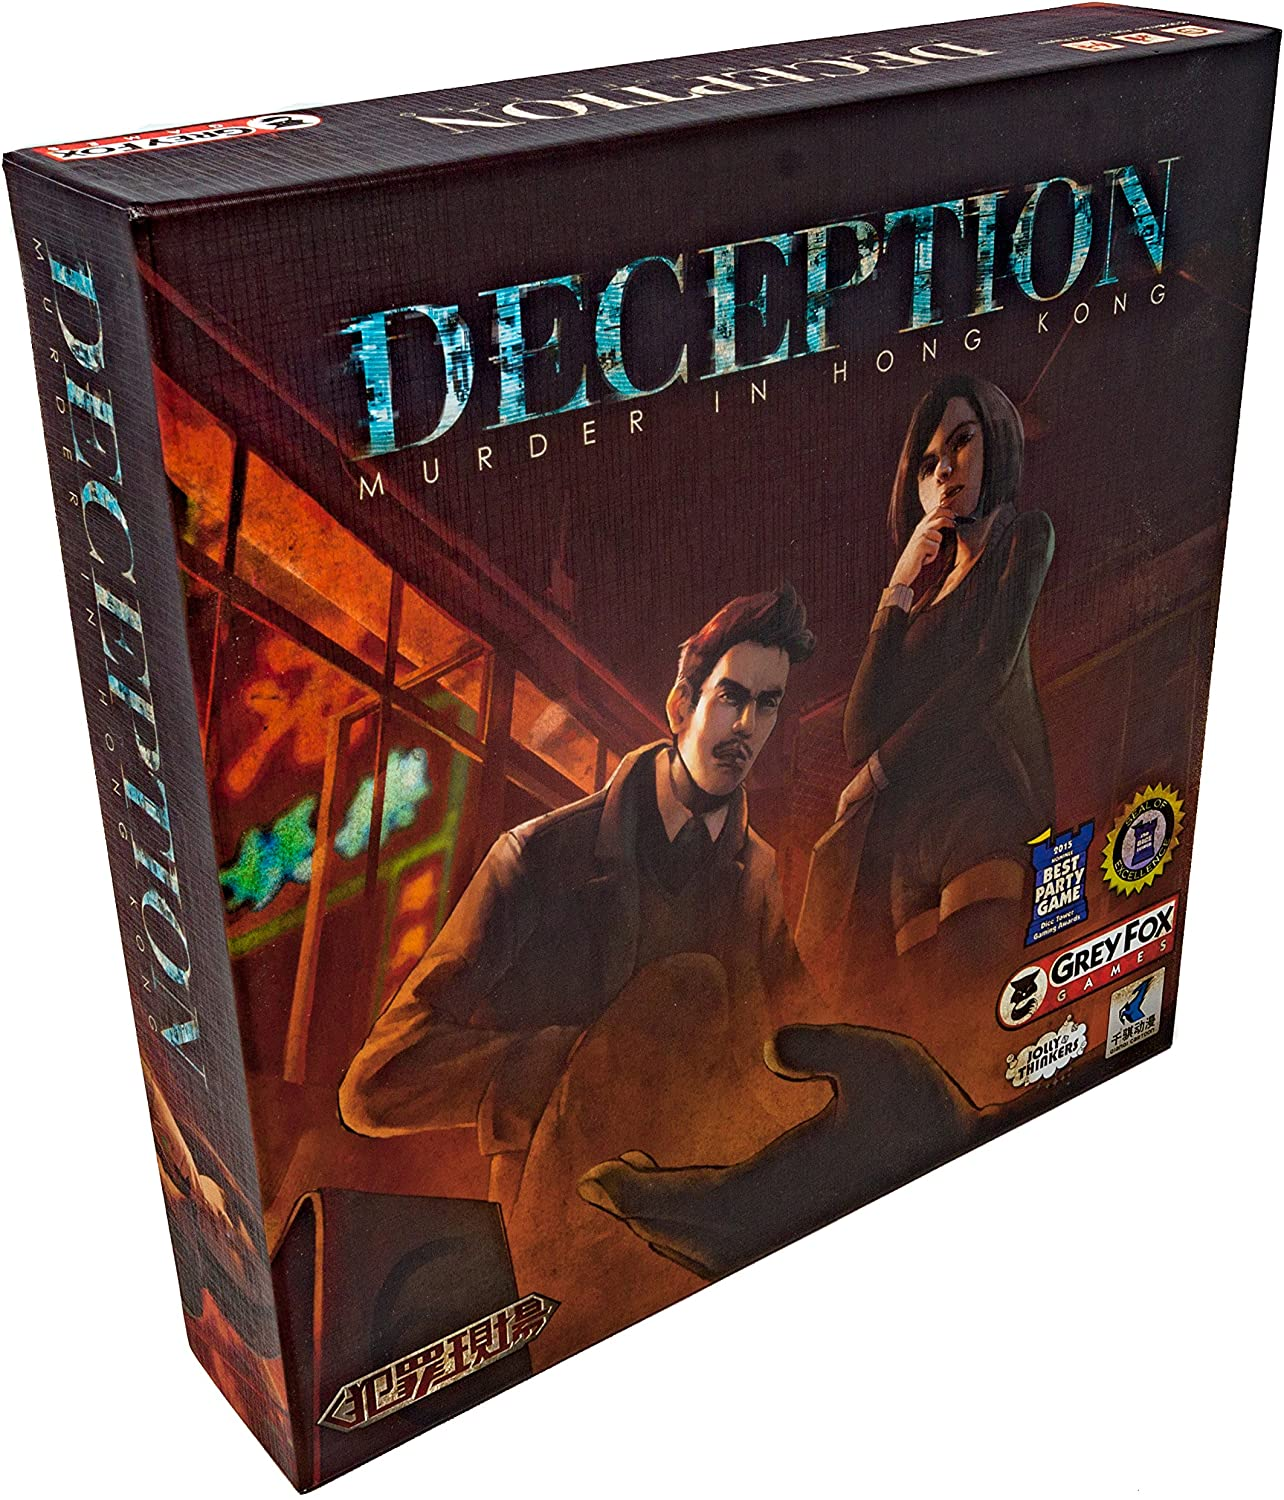 Deception Murder in Hong Kong Board Game, Fast Pace Murder Mystery Game